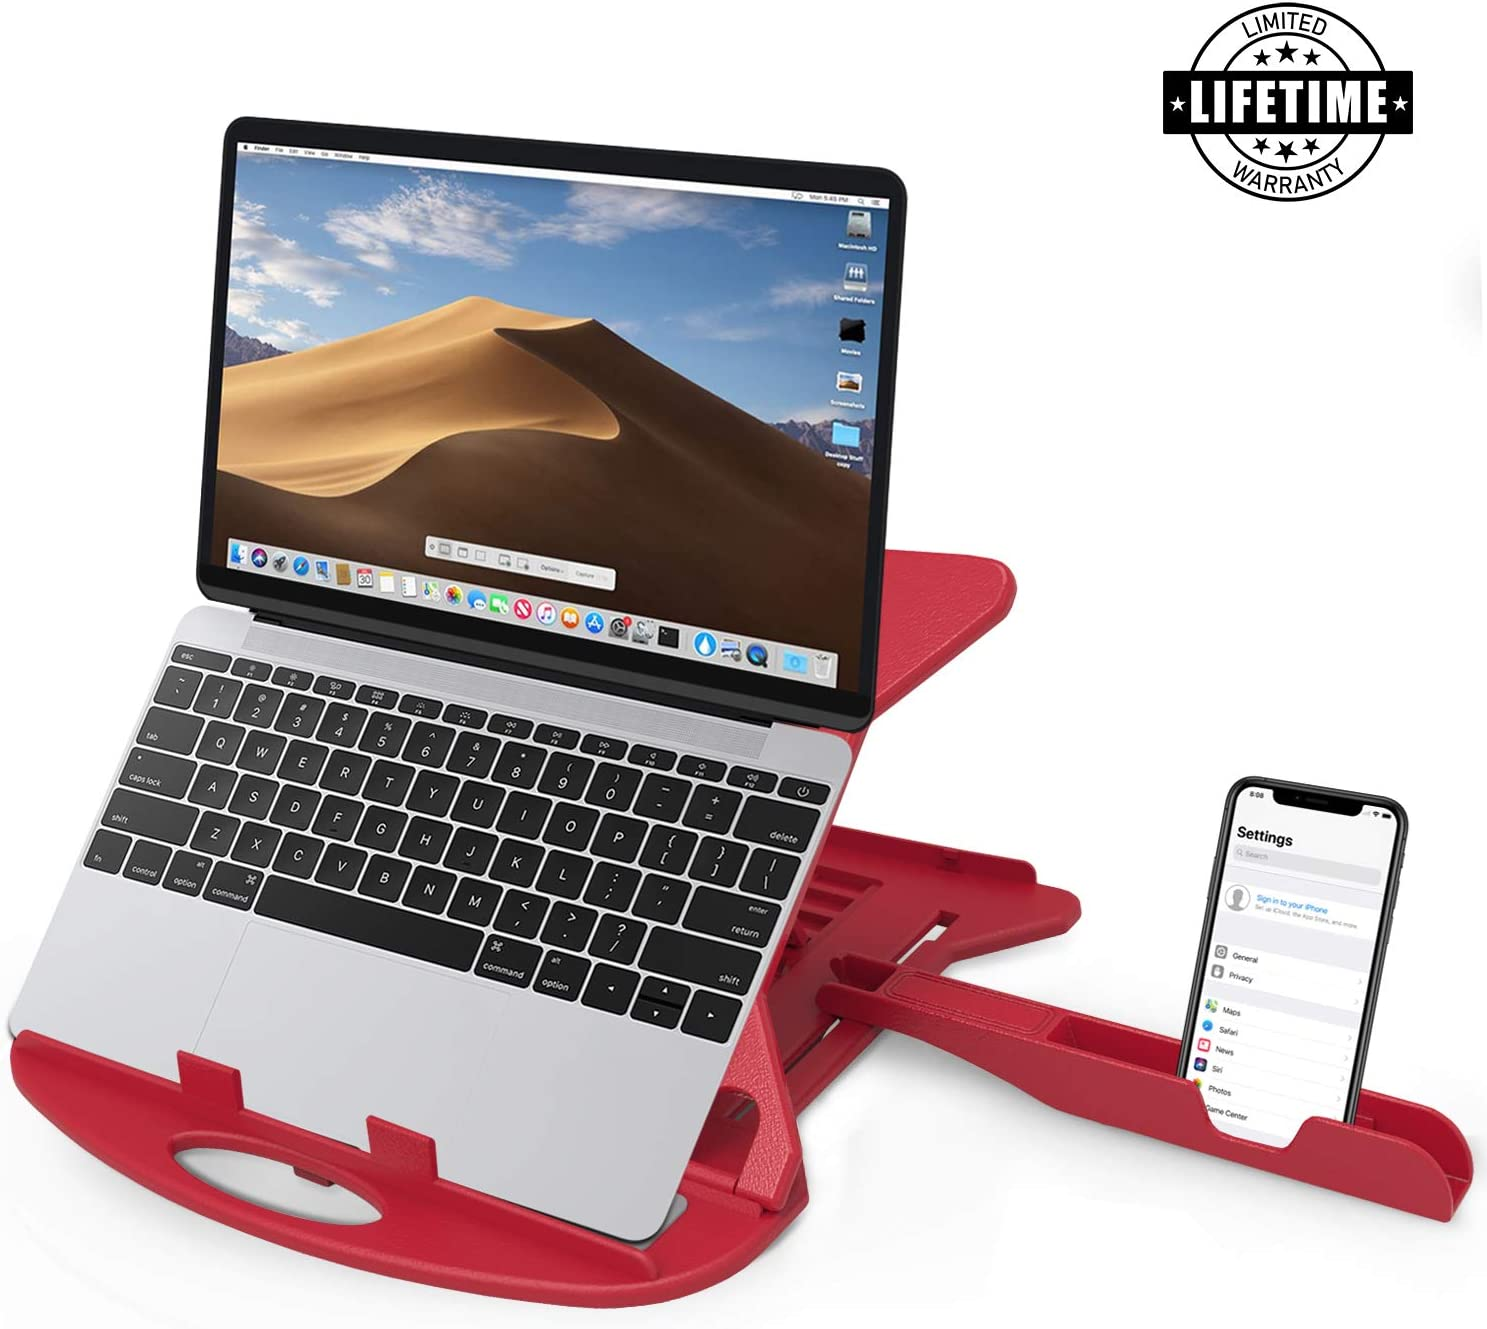 Carnation Adjustable Laptop Stand Patented Riser Ventilated Portable Foldable Swivel Compatible with MacBook Notebook Tablet Tray Desk Table Book with Free Phone Stand and Cable Clip